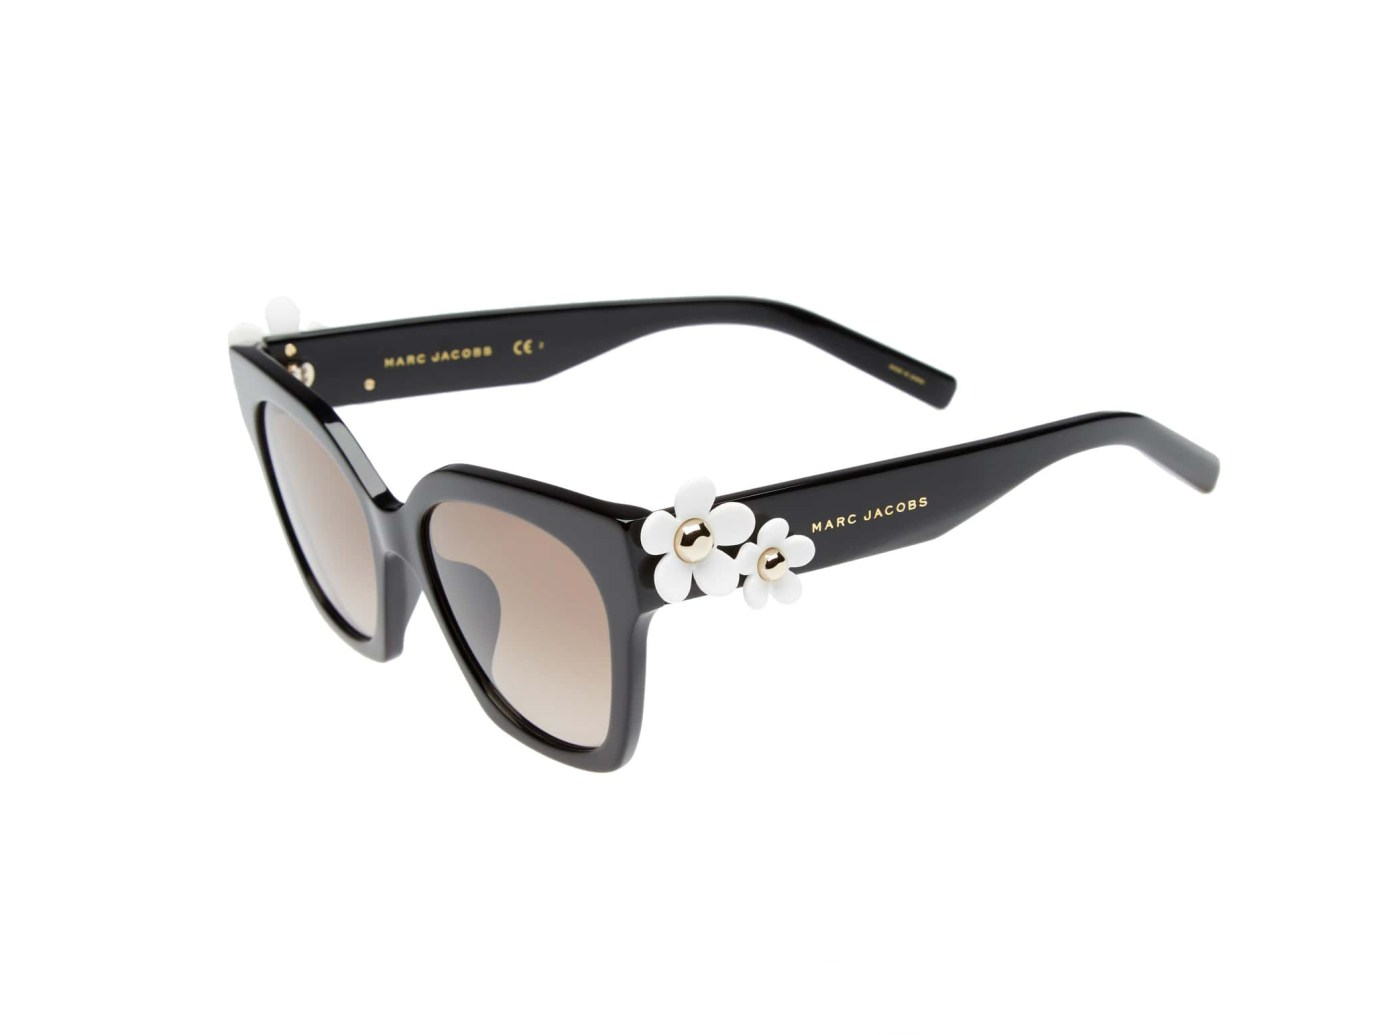 52mm Daisy Cat Eye Sunglasses MARC JACOBS